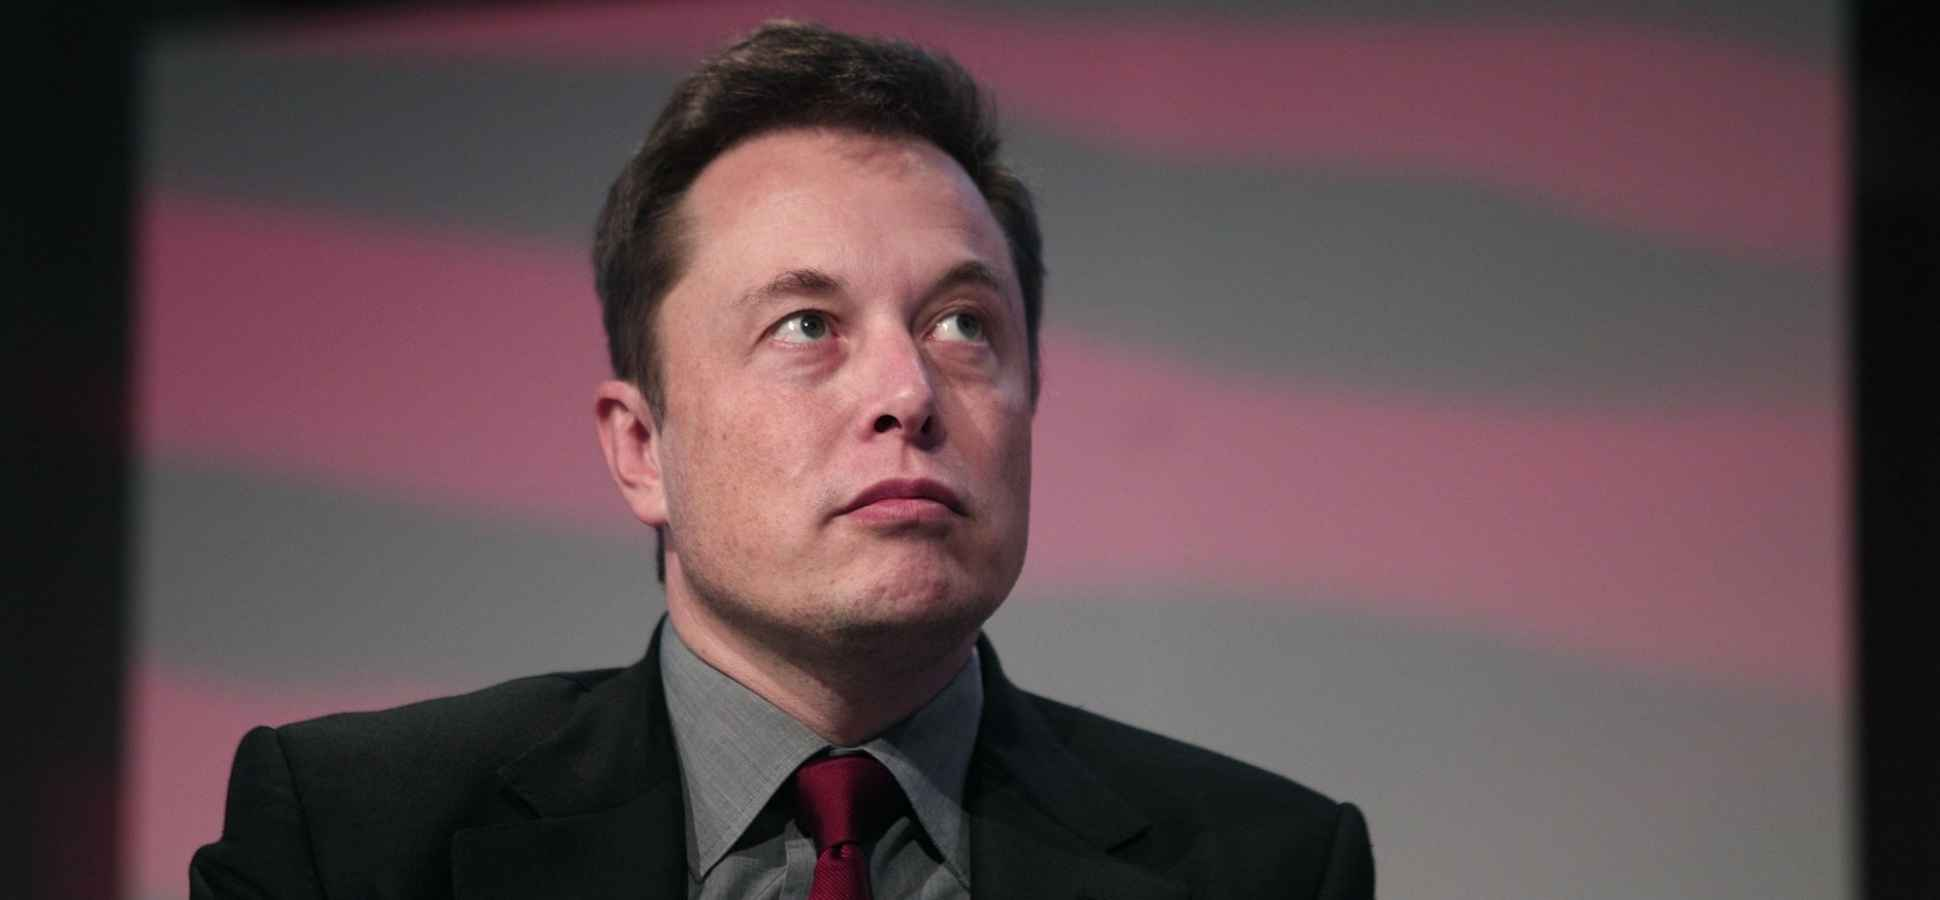 Elon Musk: AI Is Going to Happen. Let's Prepare For It